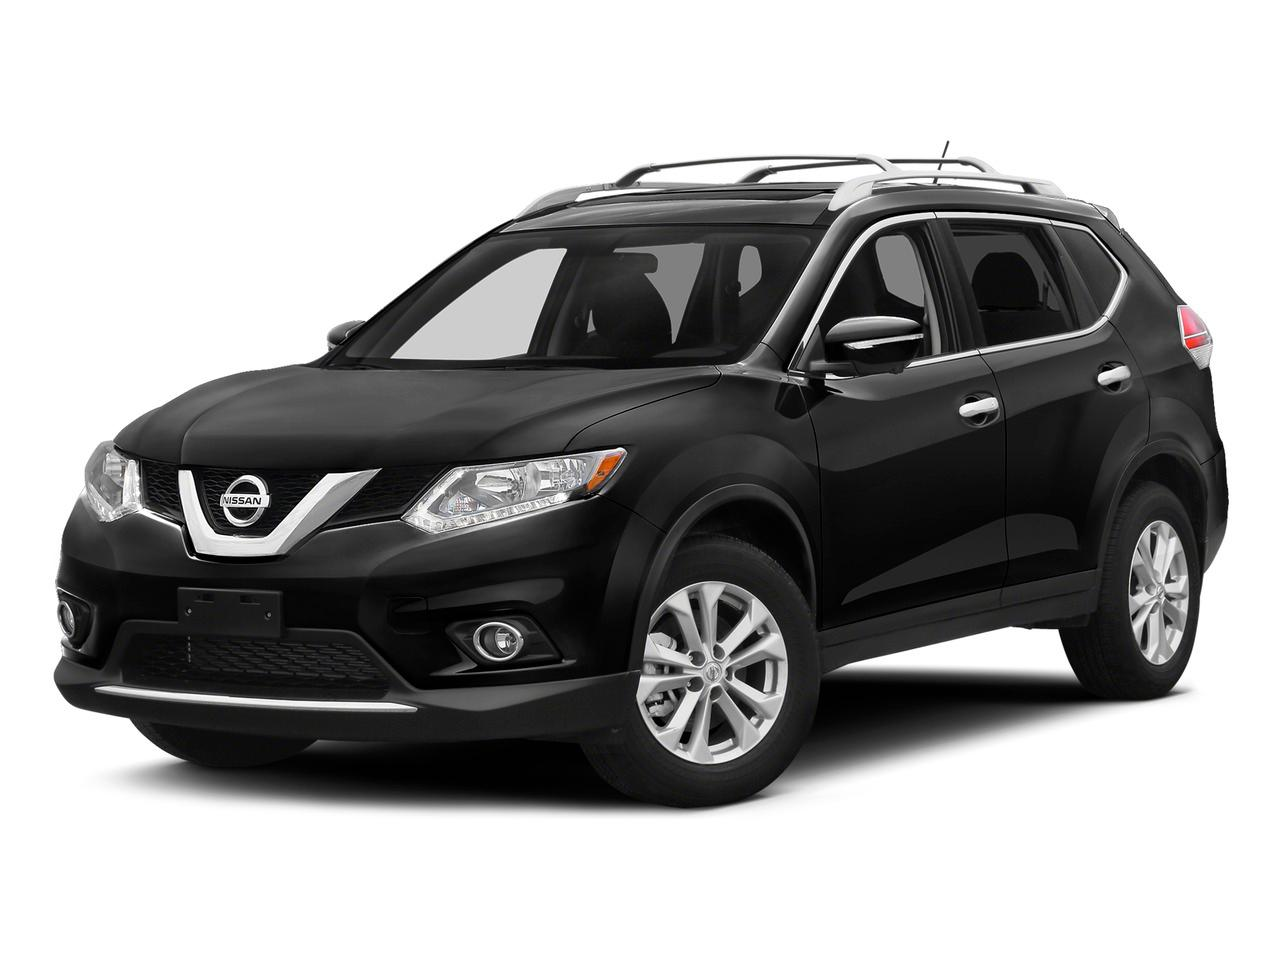 2015 Nissan Rogue Vehicle Photo in Cape May Court House, NJ 08210